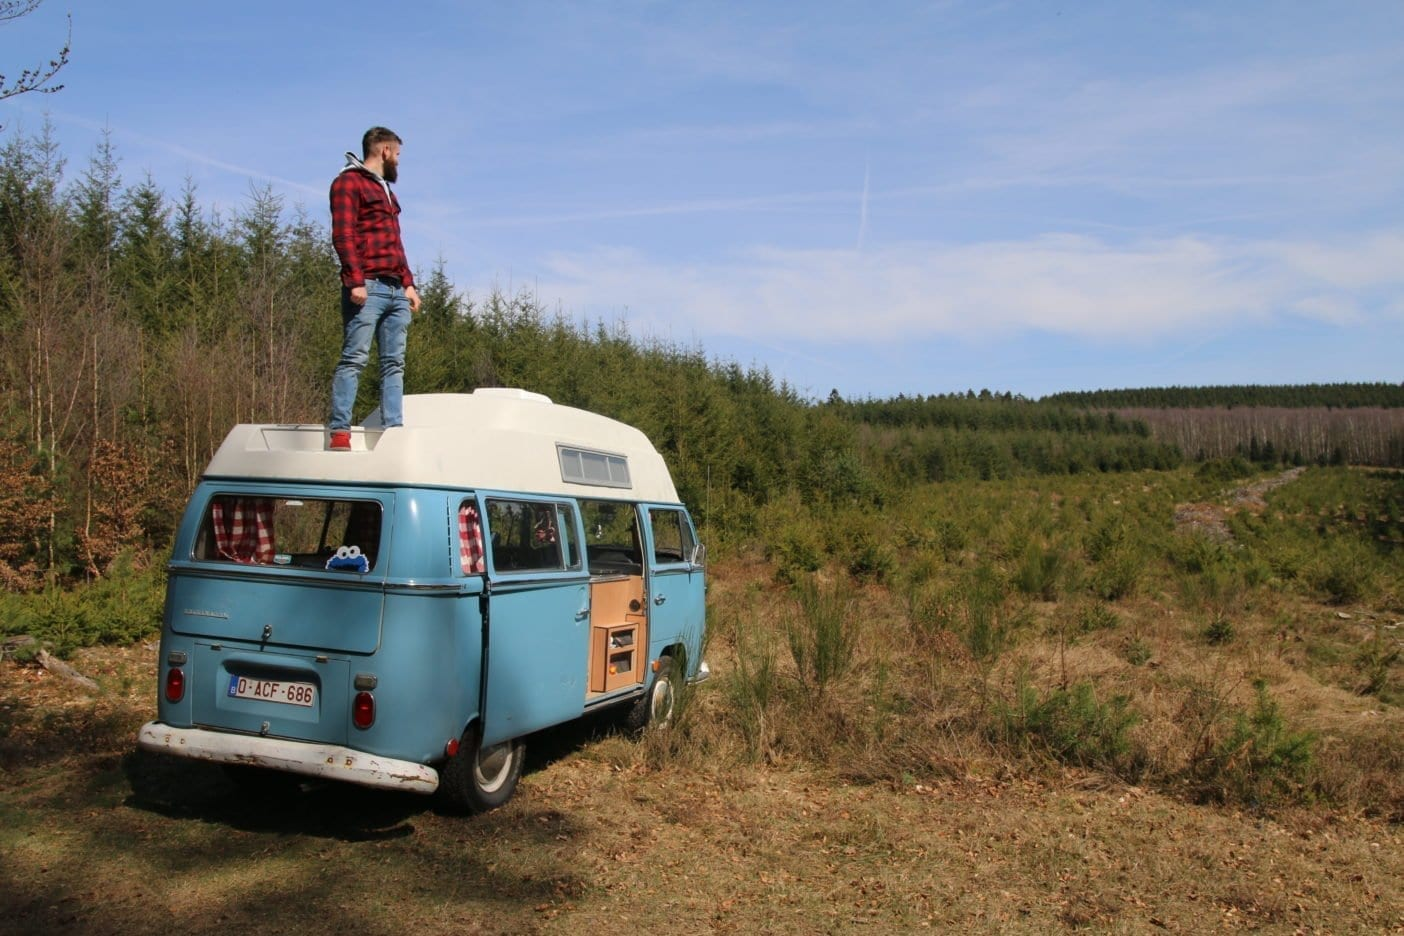 Vw-T2-Bulli-VW-Camper-Van-Campervan-camping-view-vanlife-vacations